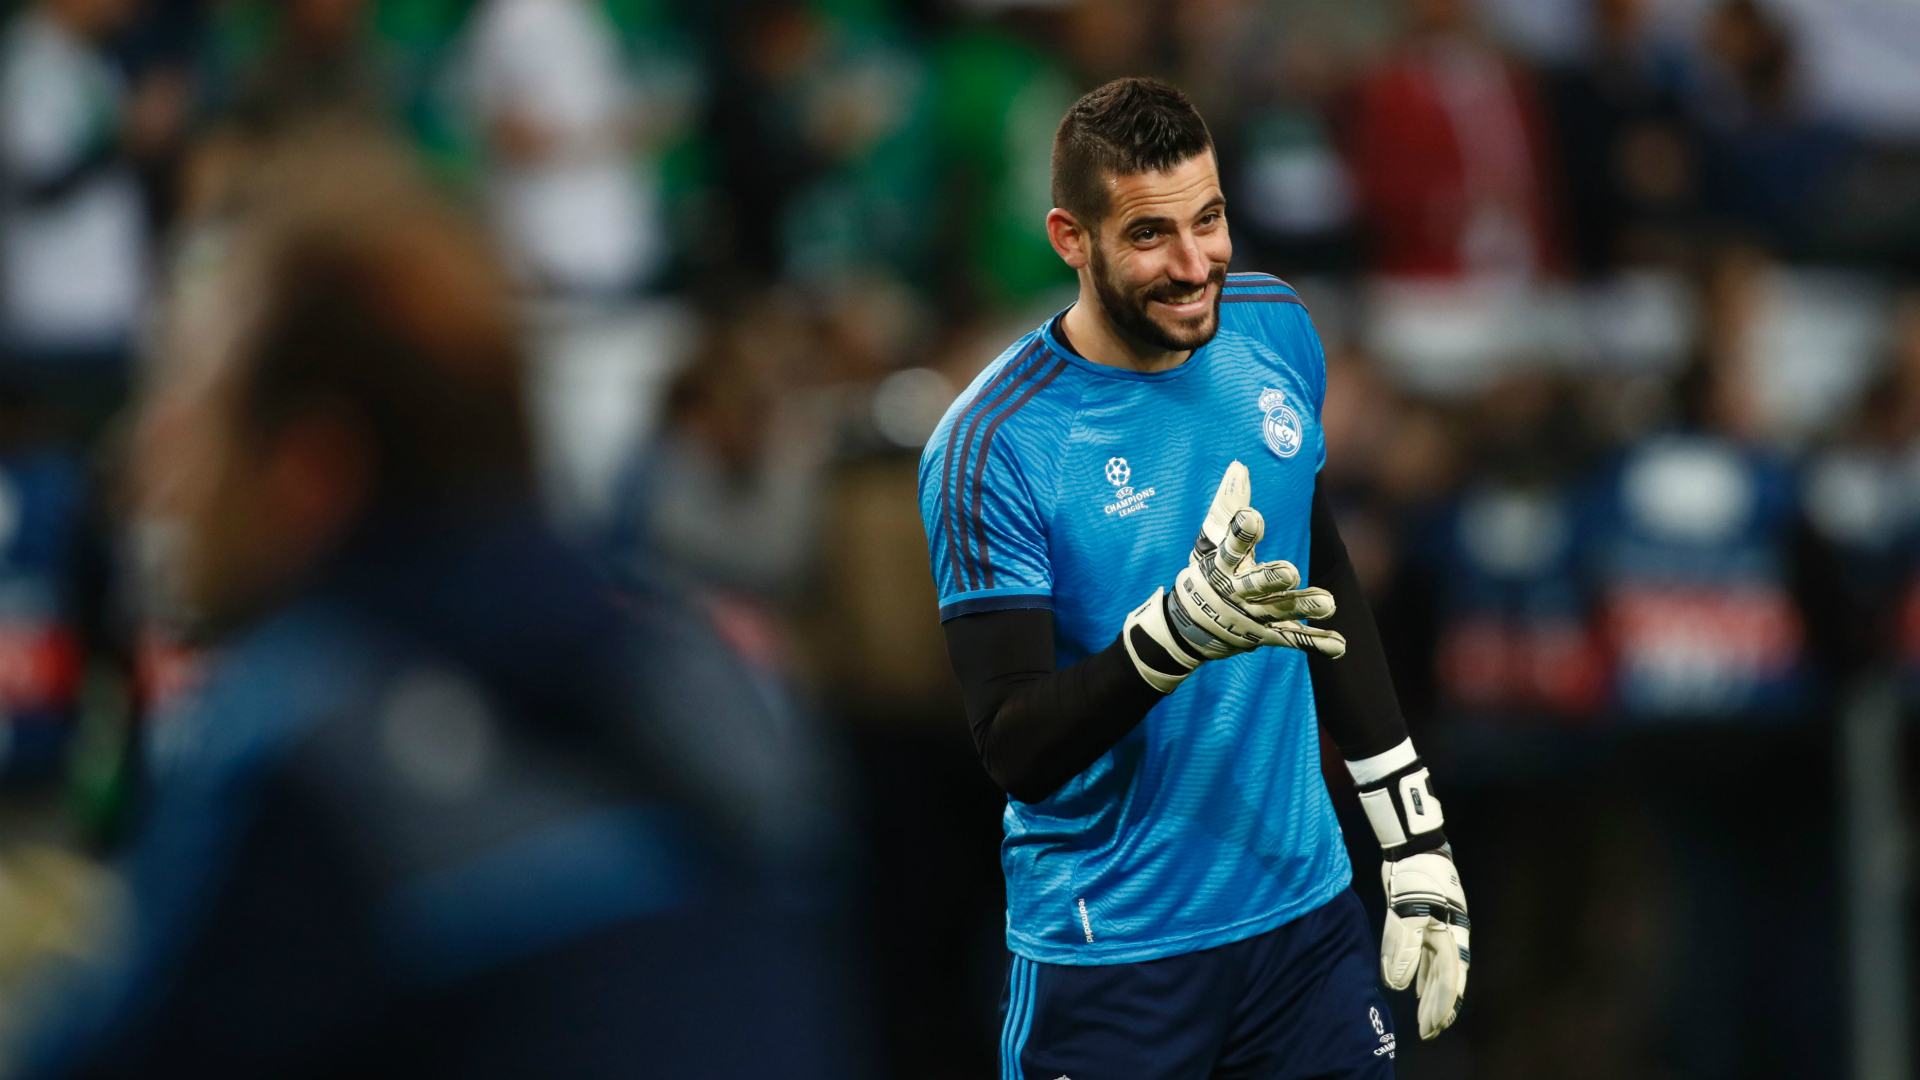 Kiko Casilla Real Madrid Champions League